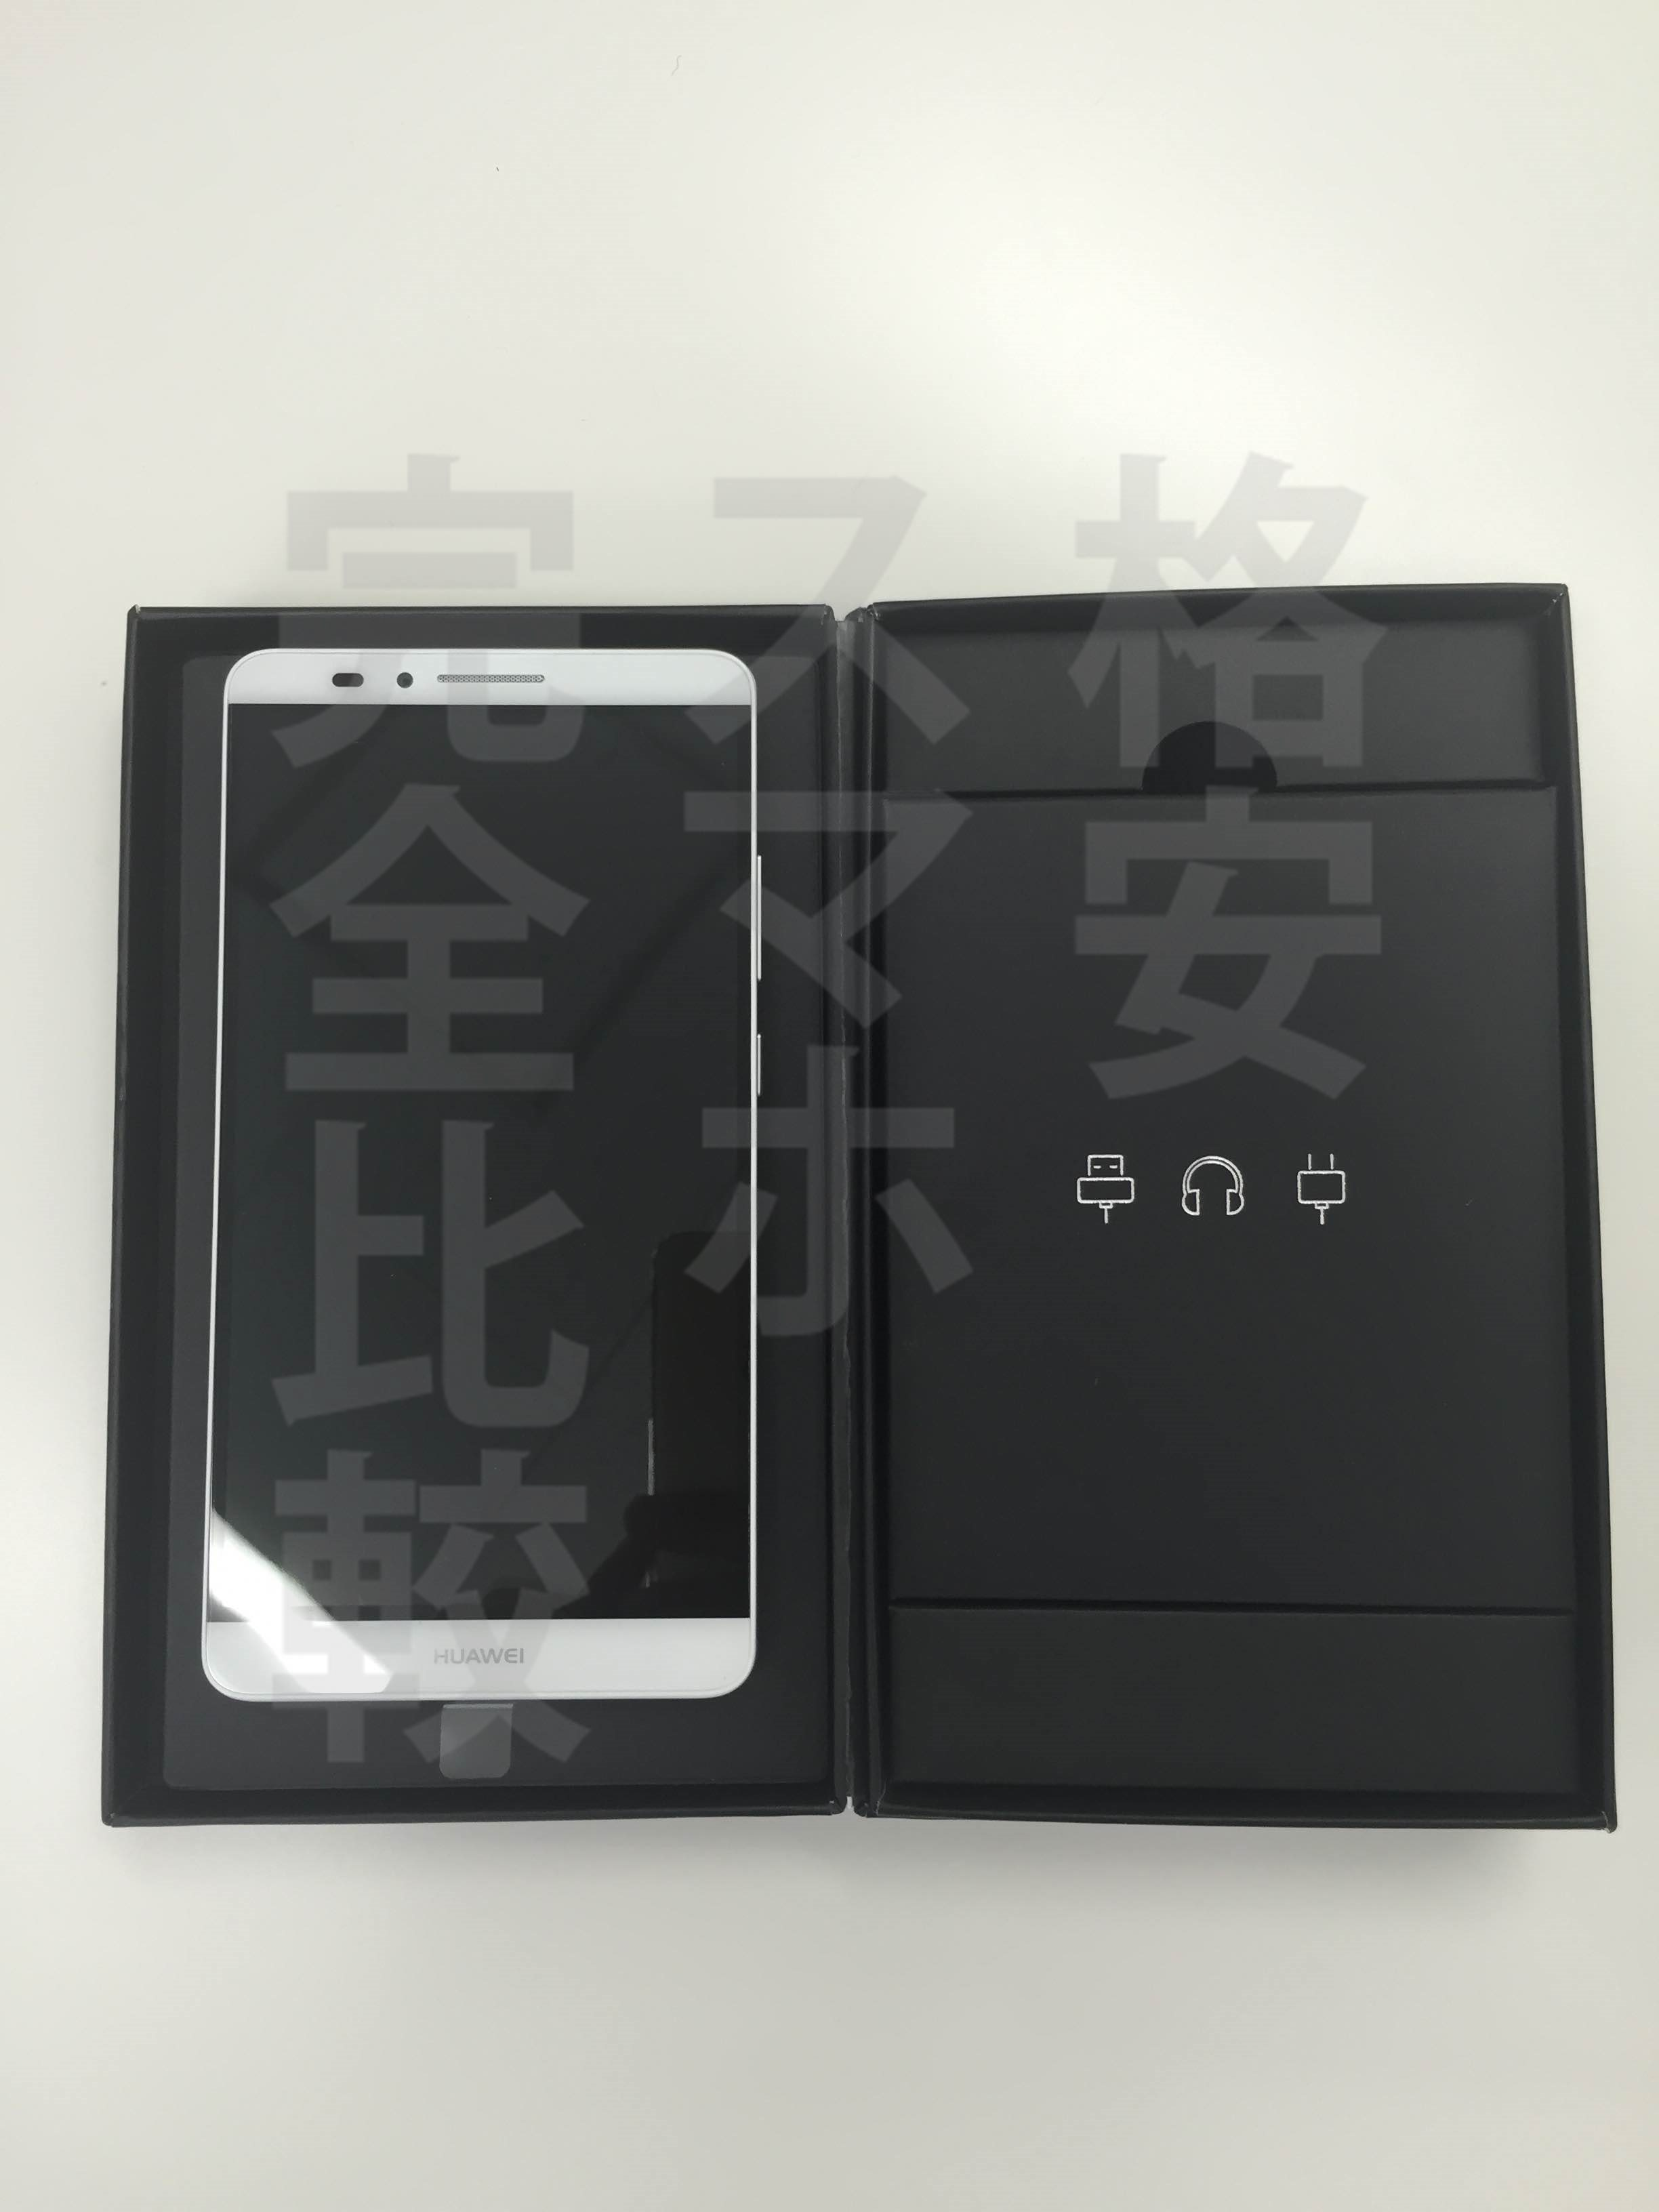 HUAWEI ASCEND  MATE7 購入!開封の儀を行います!【MATE7】